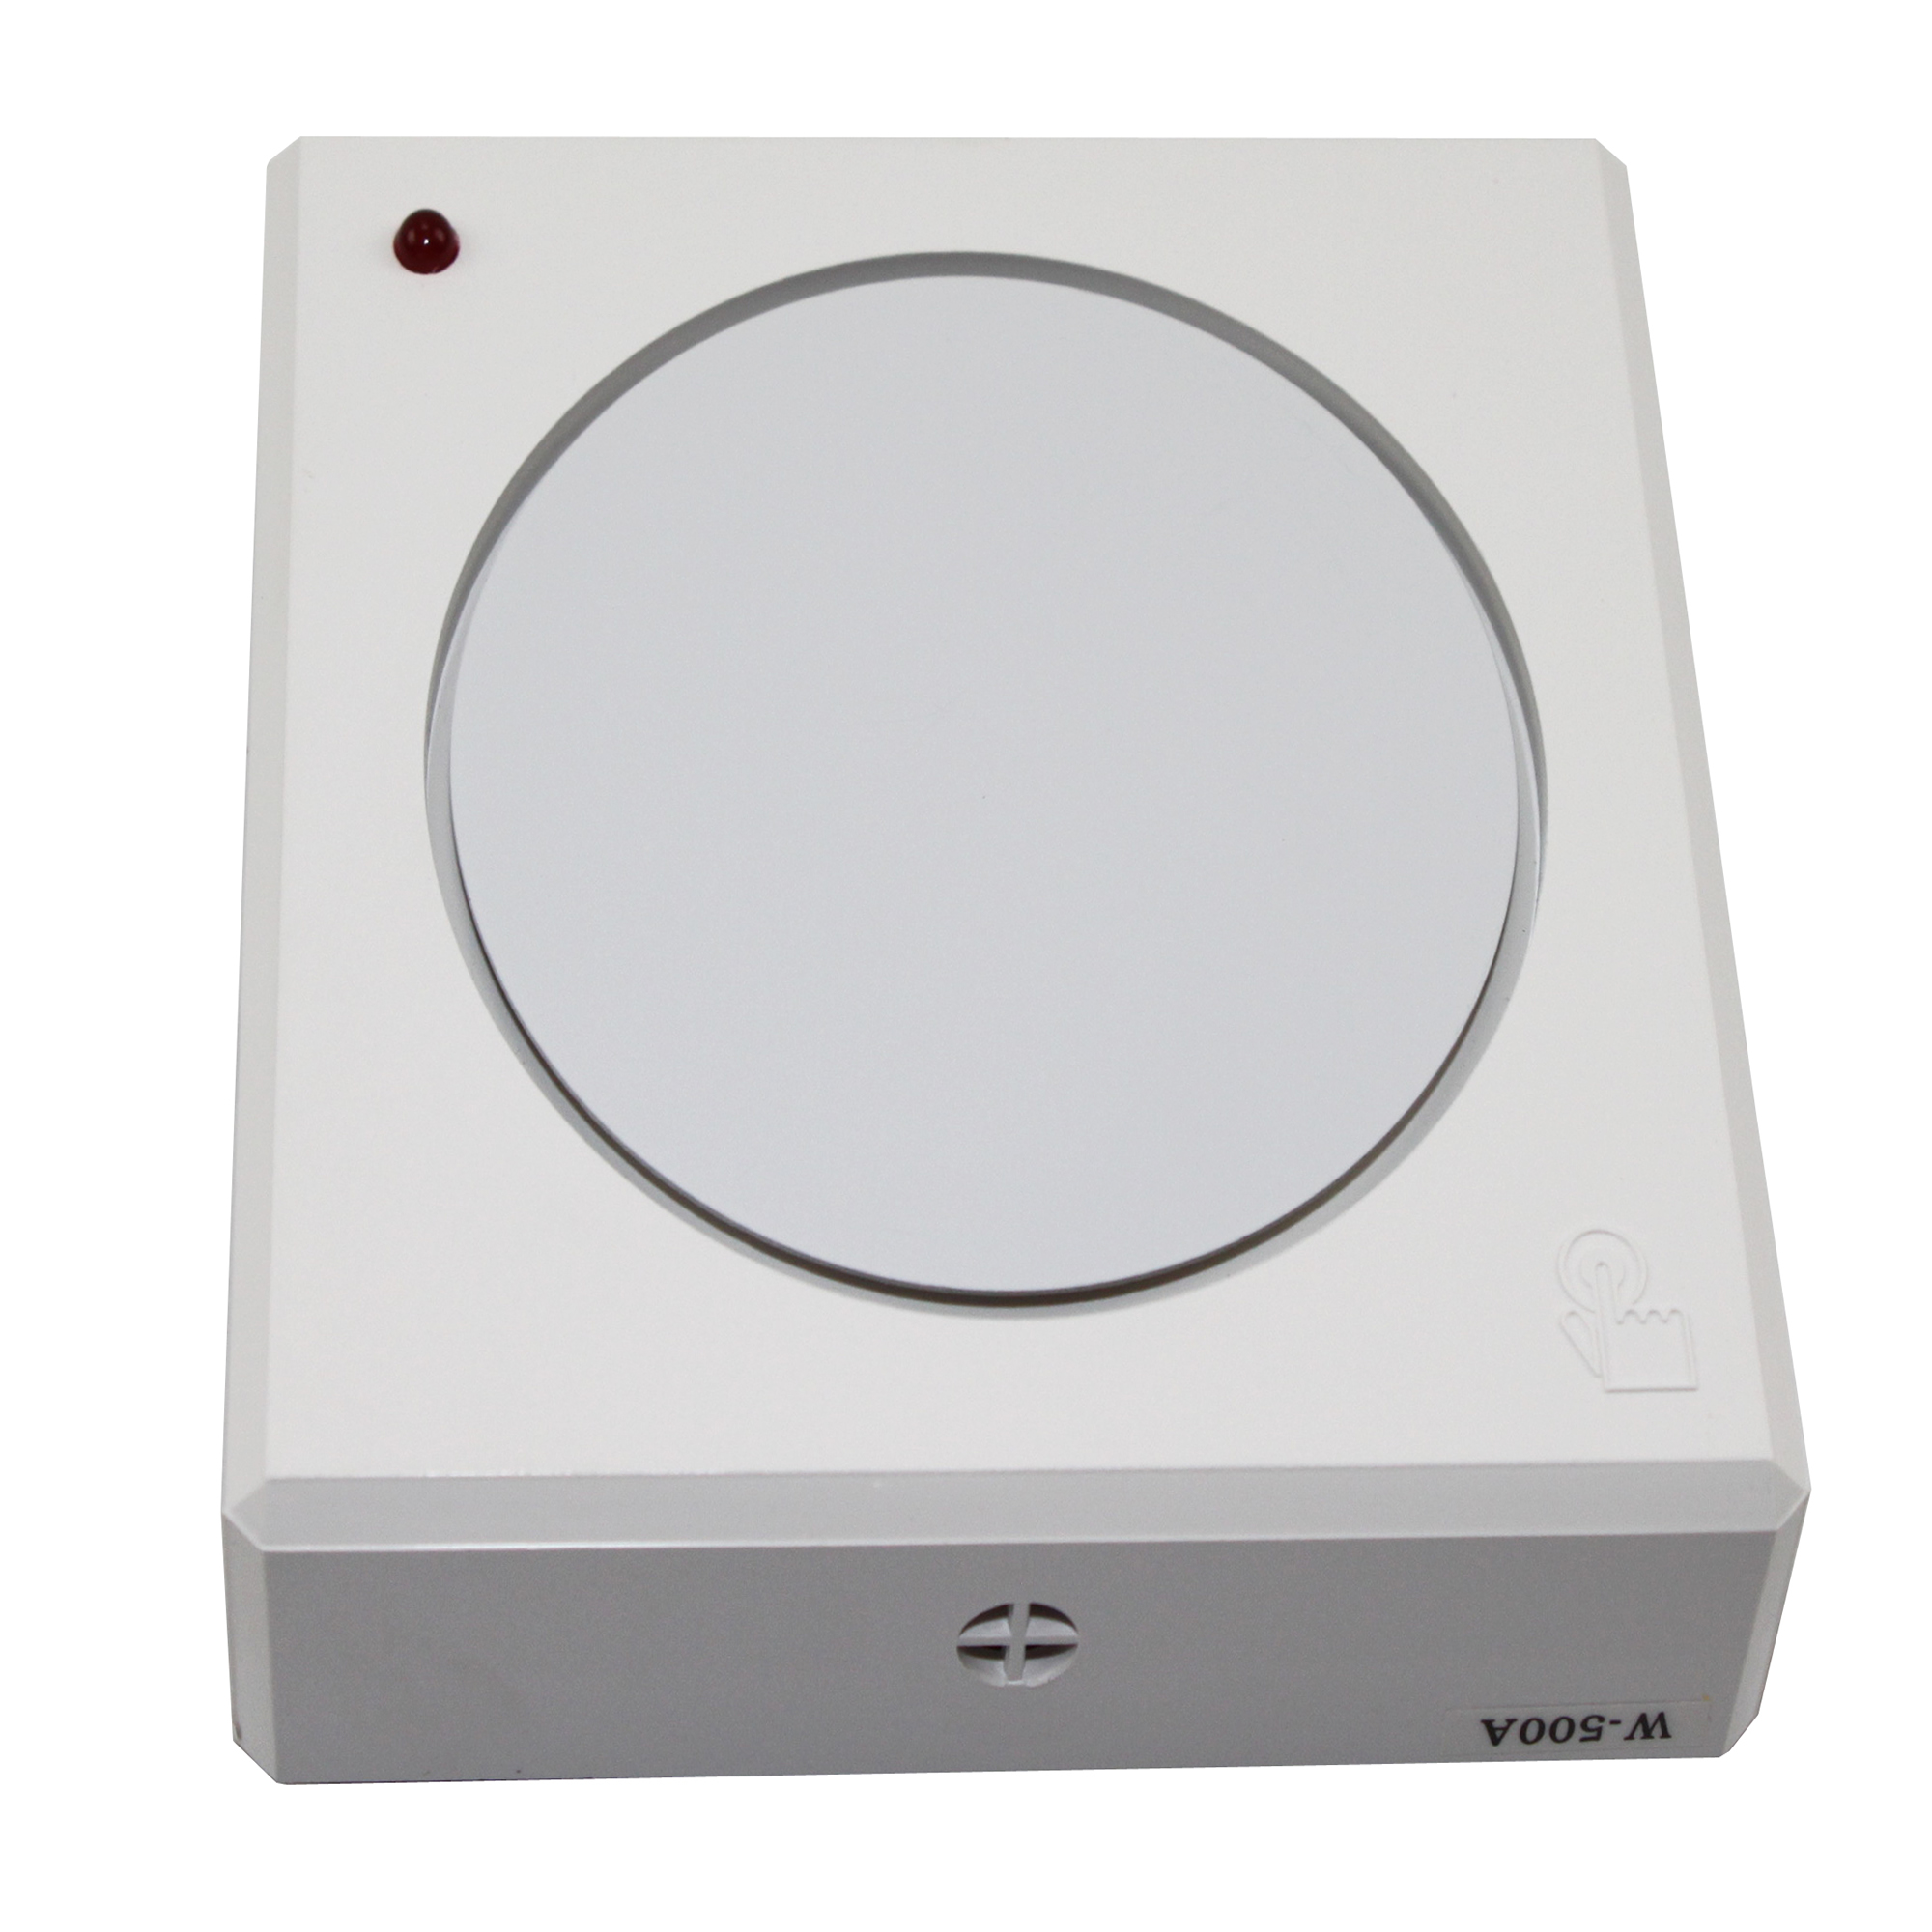 Wattstopper Occupancy Sensor Ceiling: WATT STOPPER W-500A ULTRASONIC OCCUPANCY SENSOR FOR